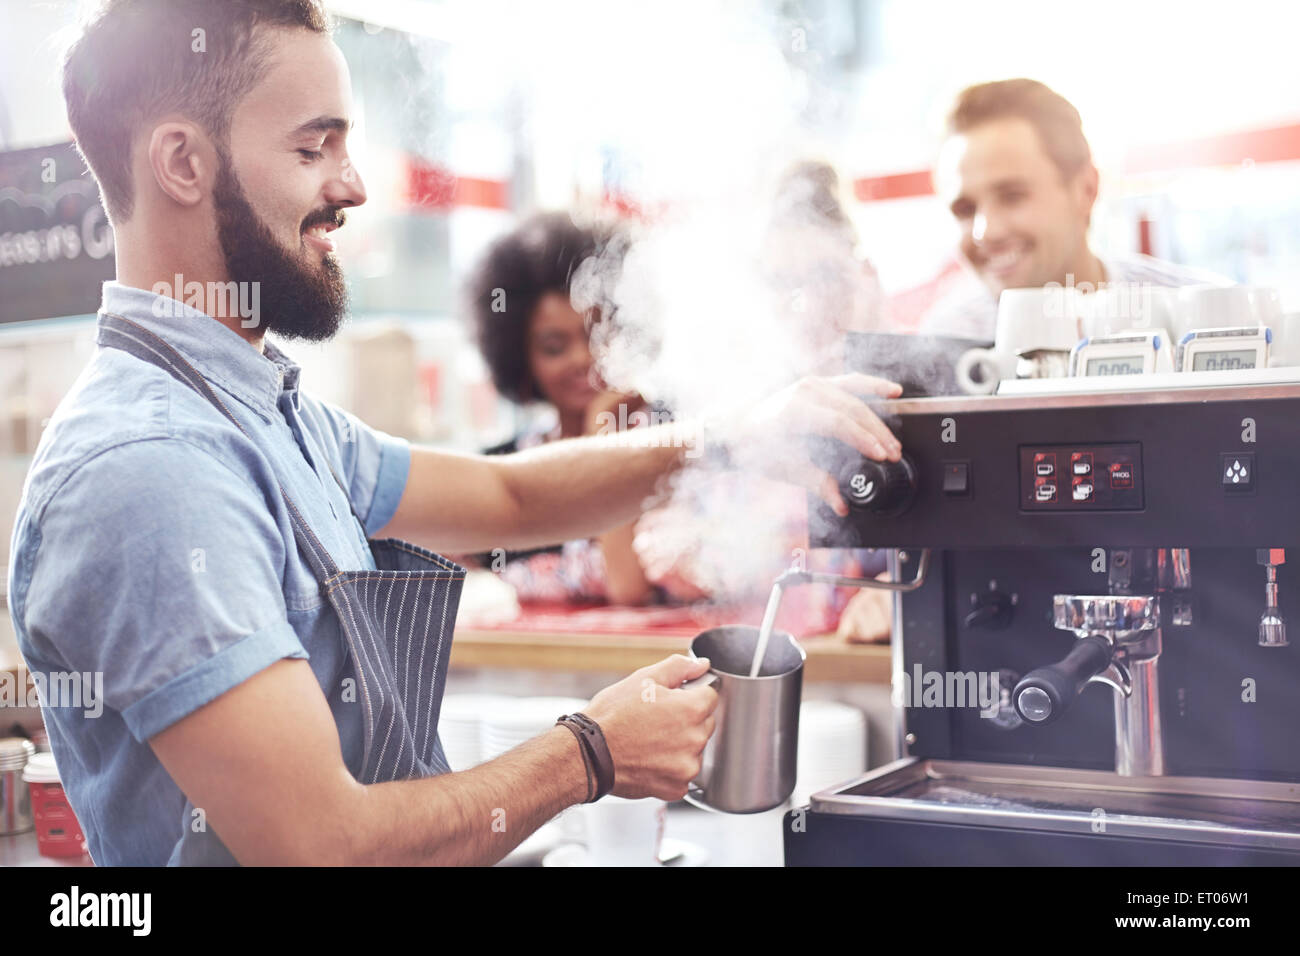 Barista steaming milk in cafe - Stock Image